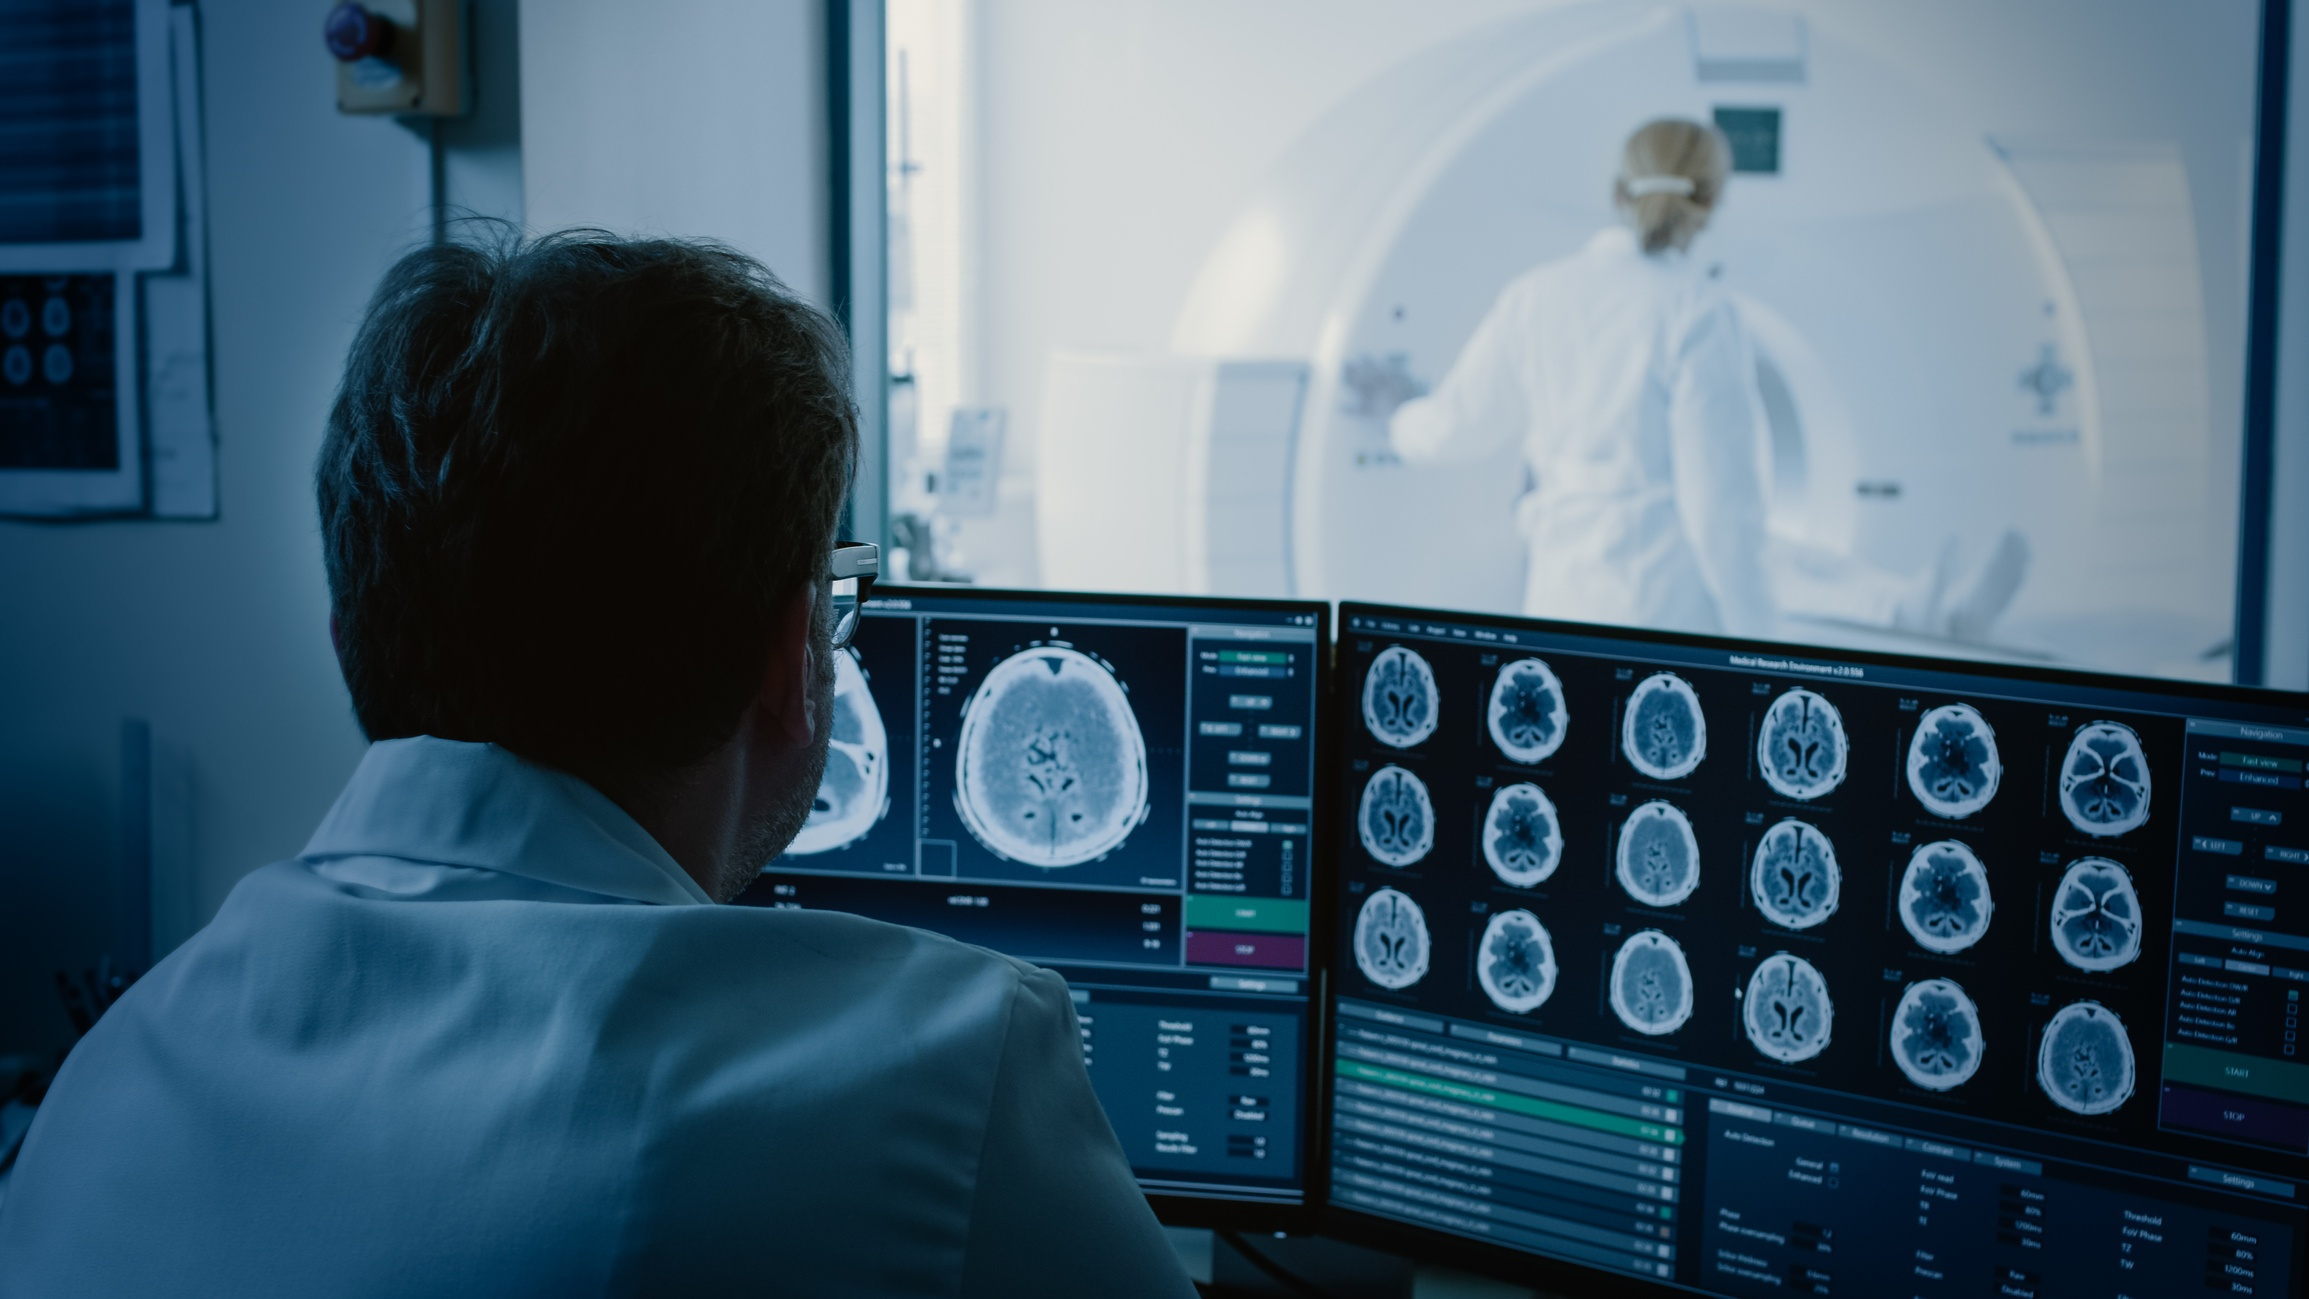 In Medical Laboratory Patient Undergoes MRI or CT Scan Process under Supervision of Radiologist, in Control Room Doctor Watches Procedure and Monitors with Brain Scans Results.